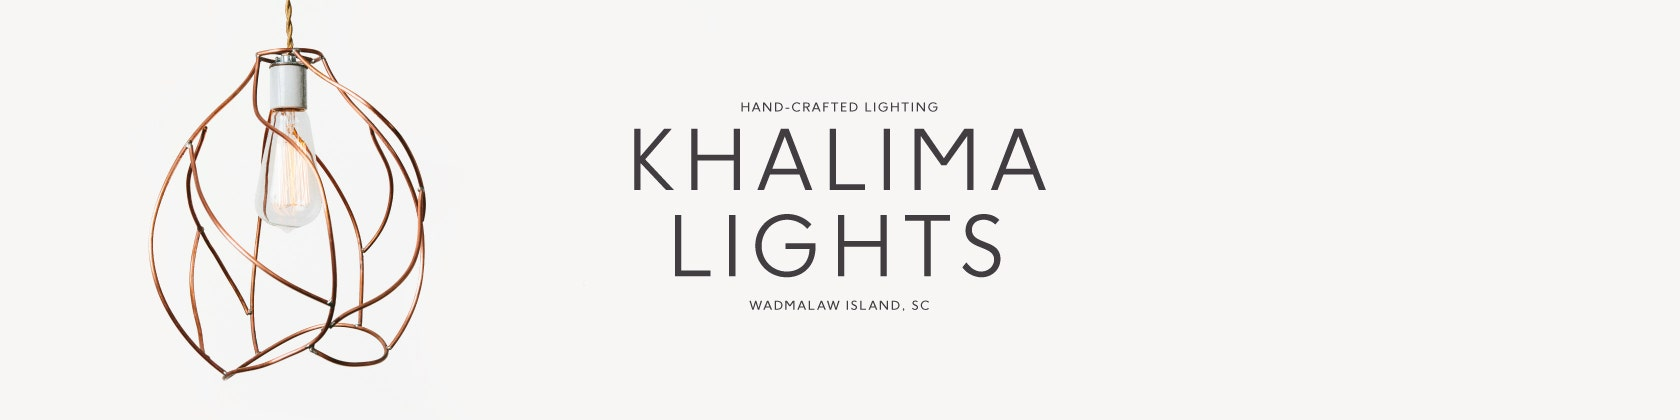 Artisan Lighting Handmade in the South by KhalimaLights on Etsy